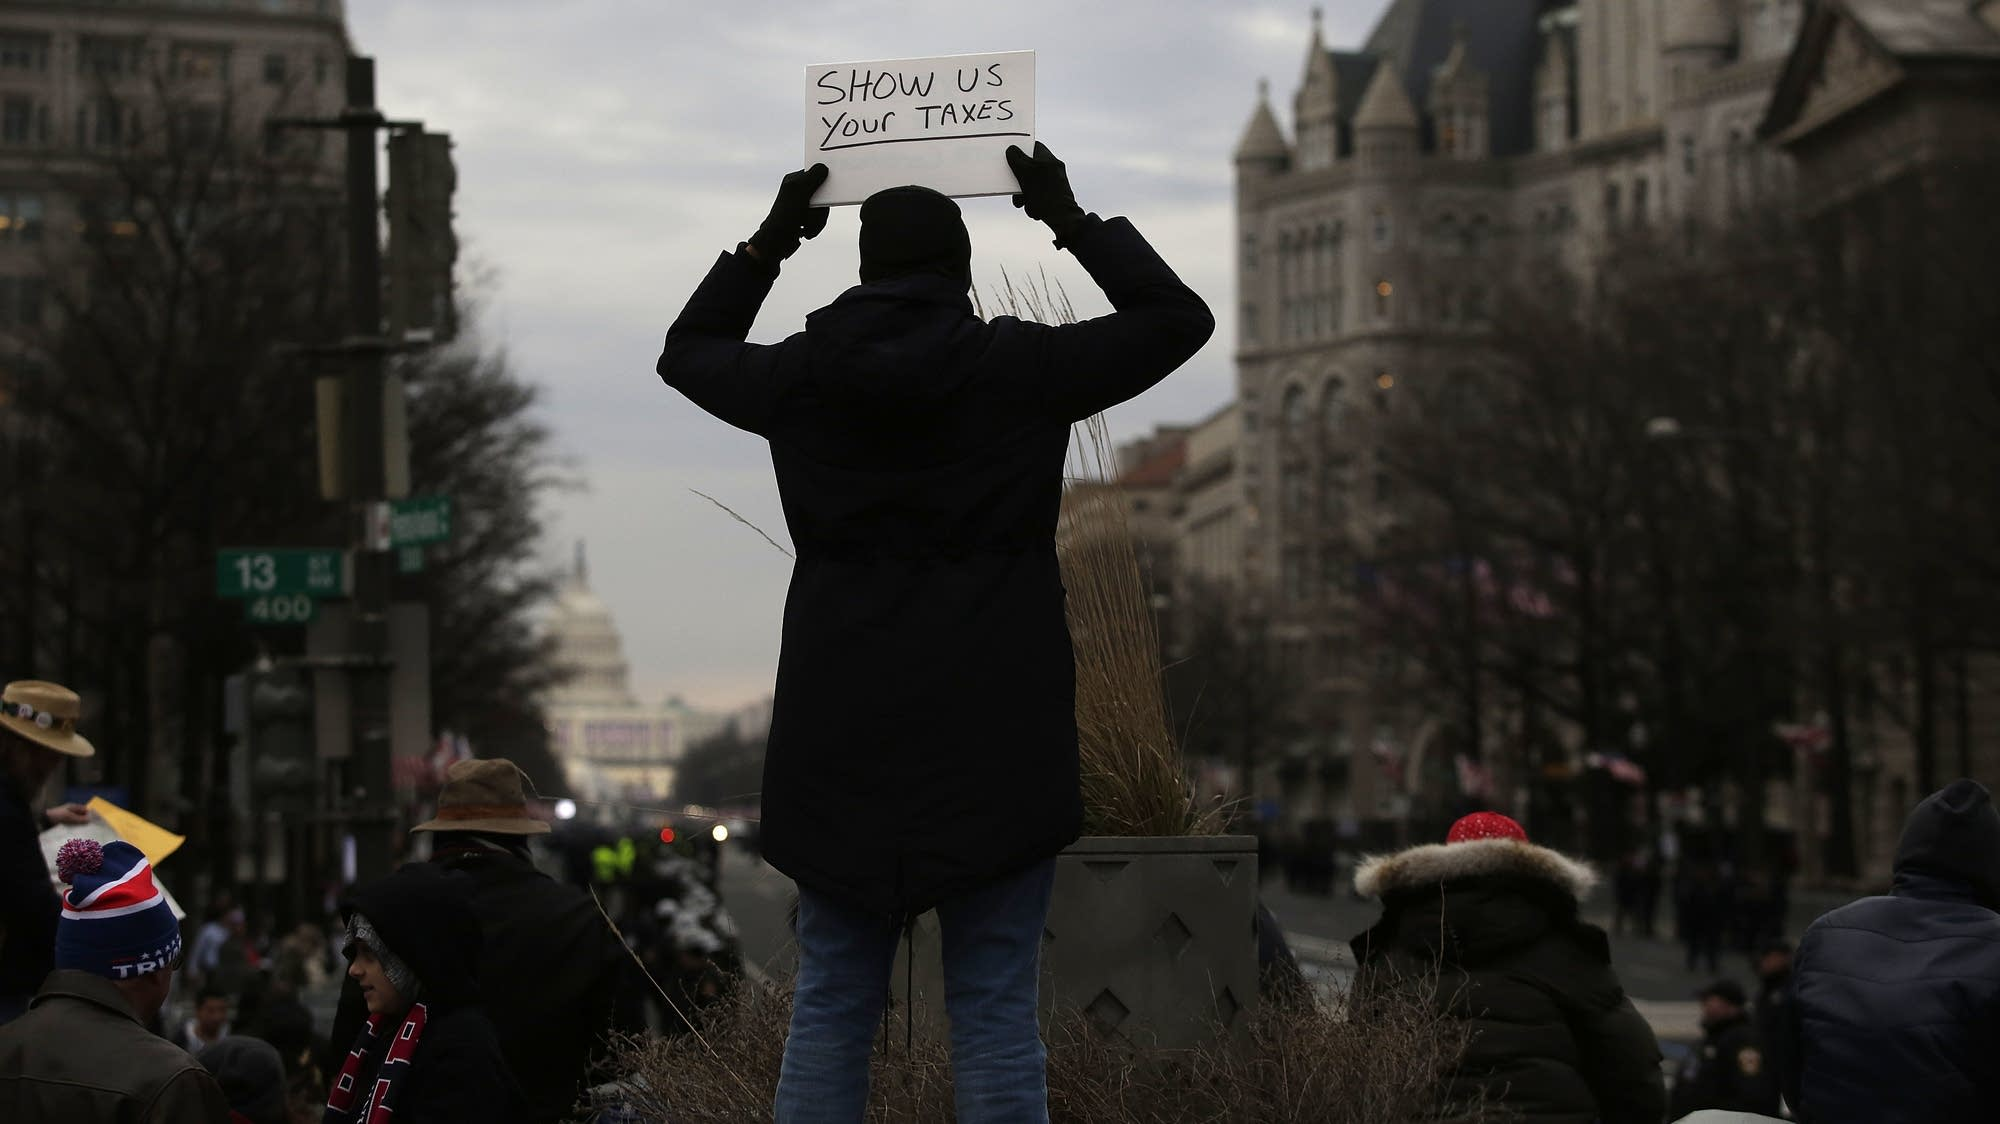 A person holds up a sign before the presidential inauguration.